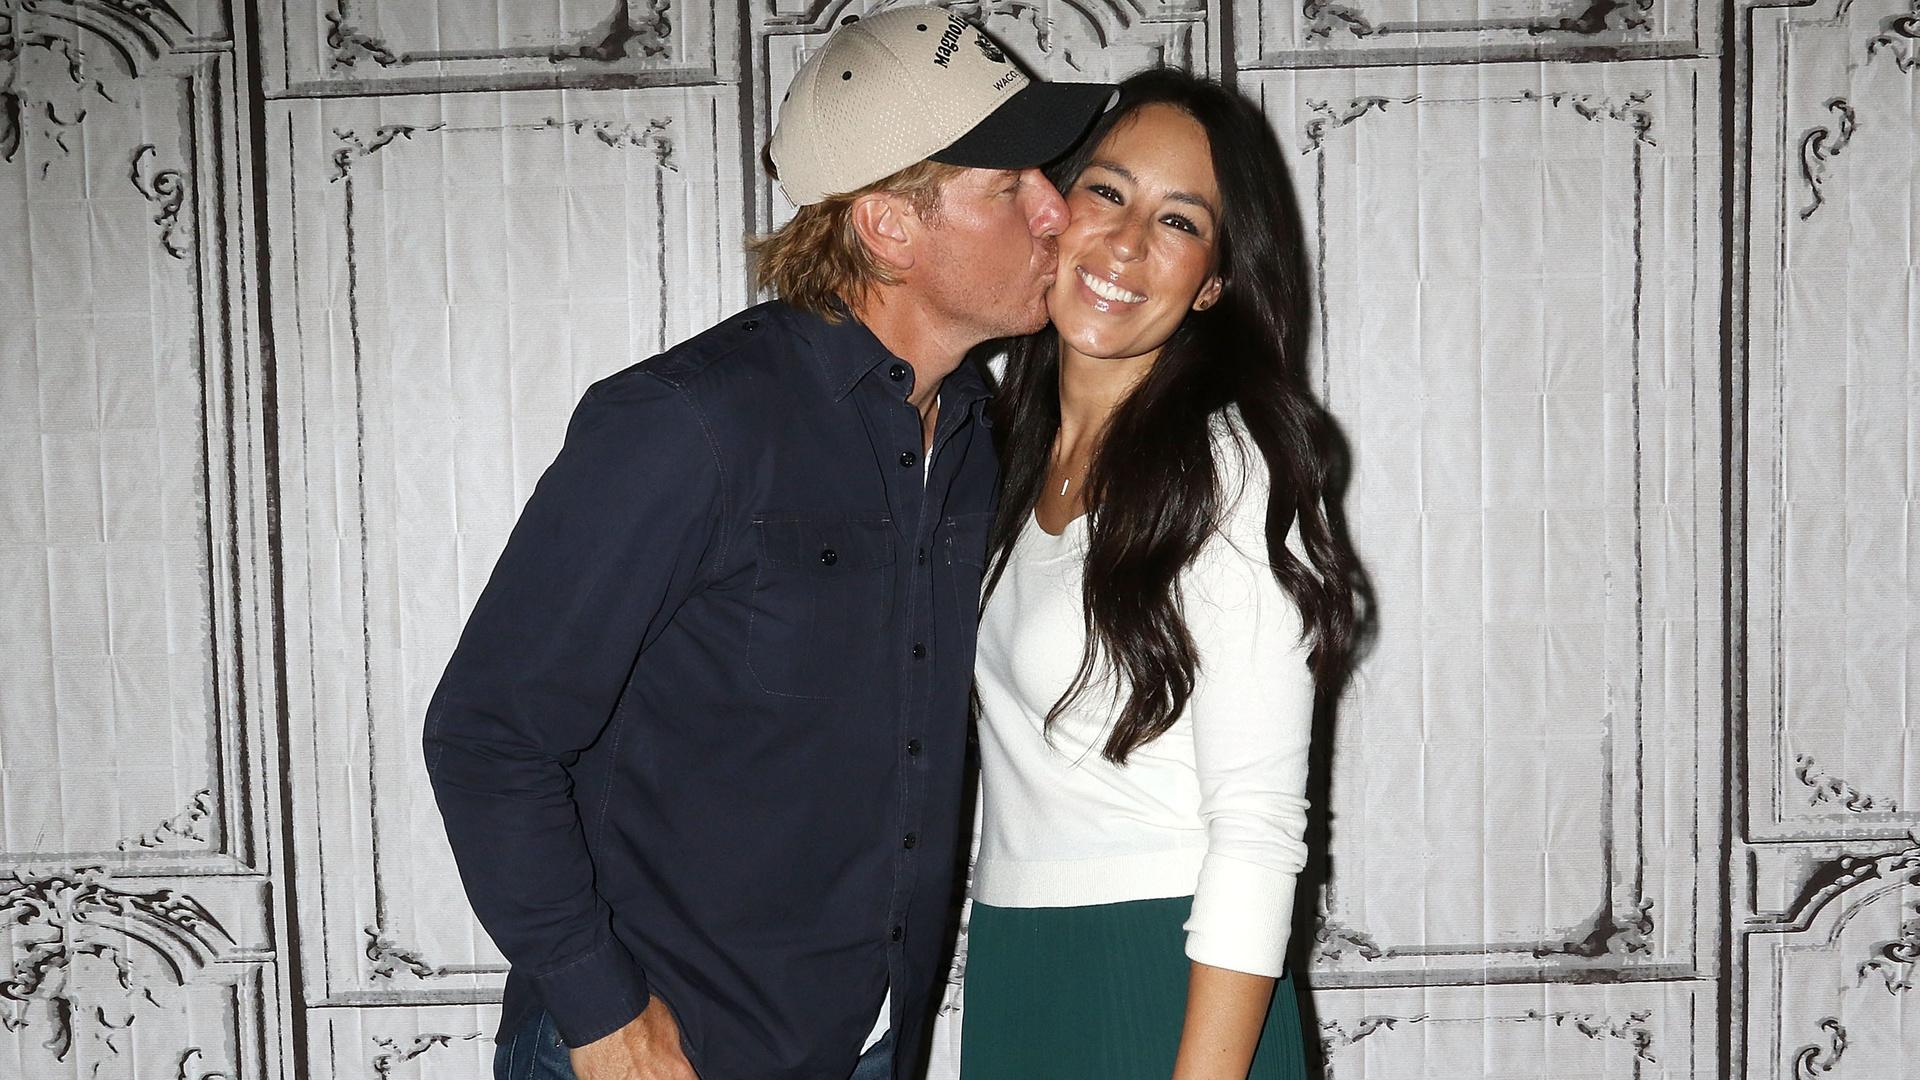 Chip and Joanna Gaines Reveal How They Balance Marriage With Working Together